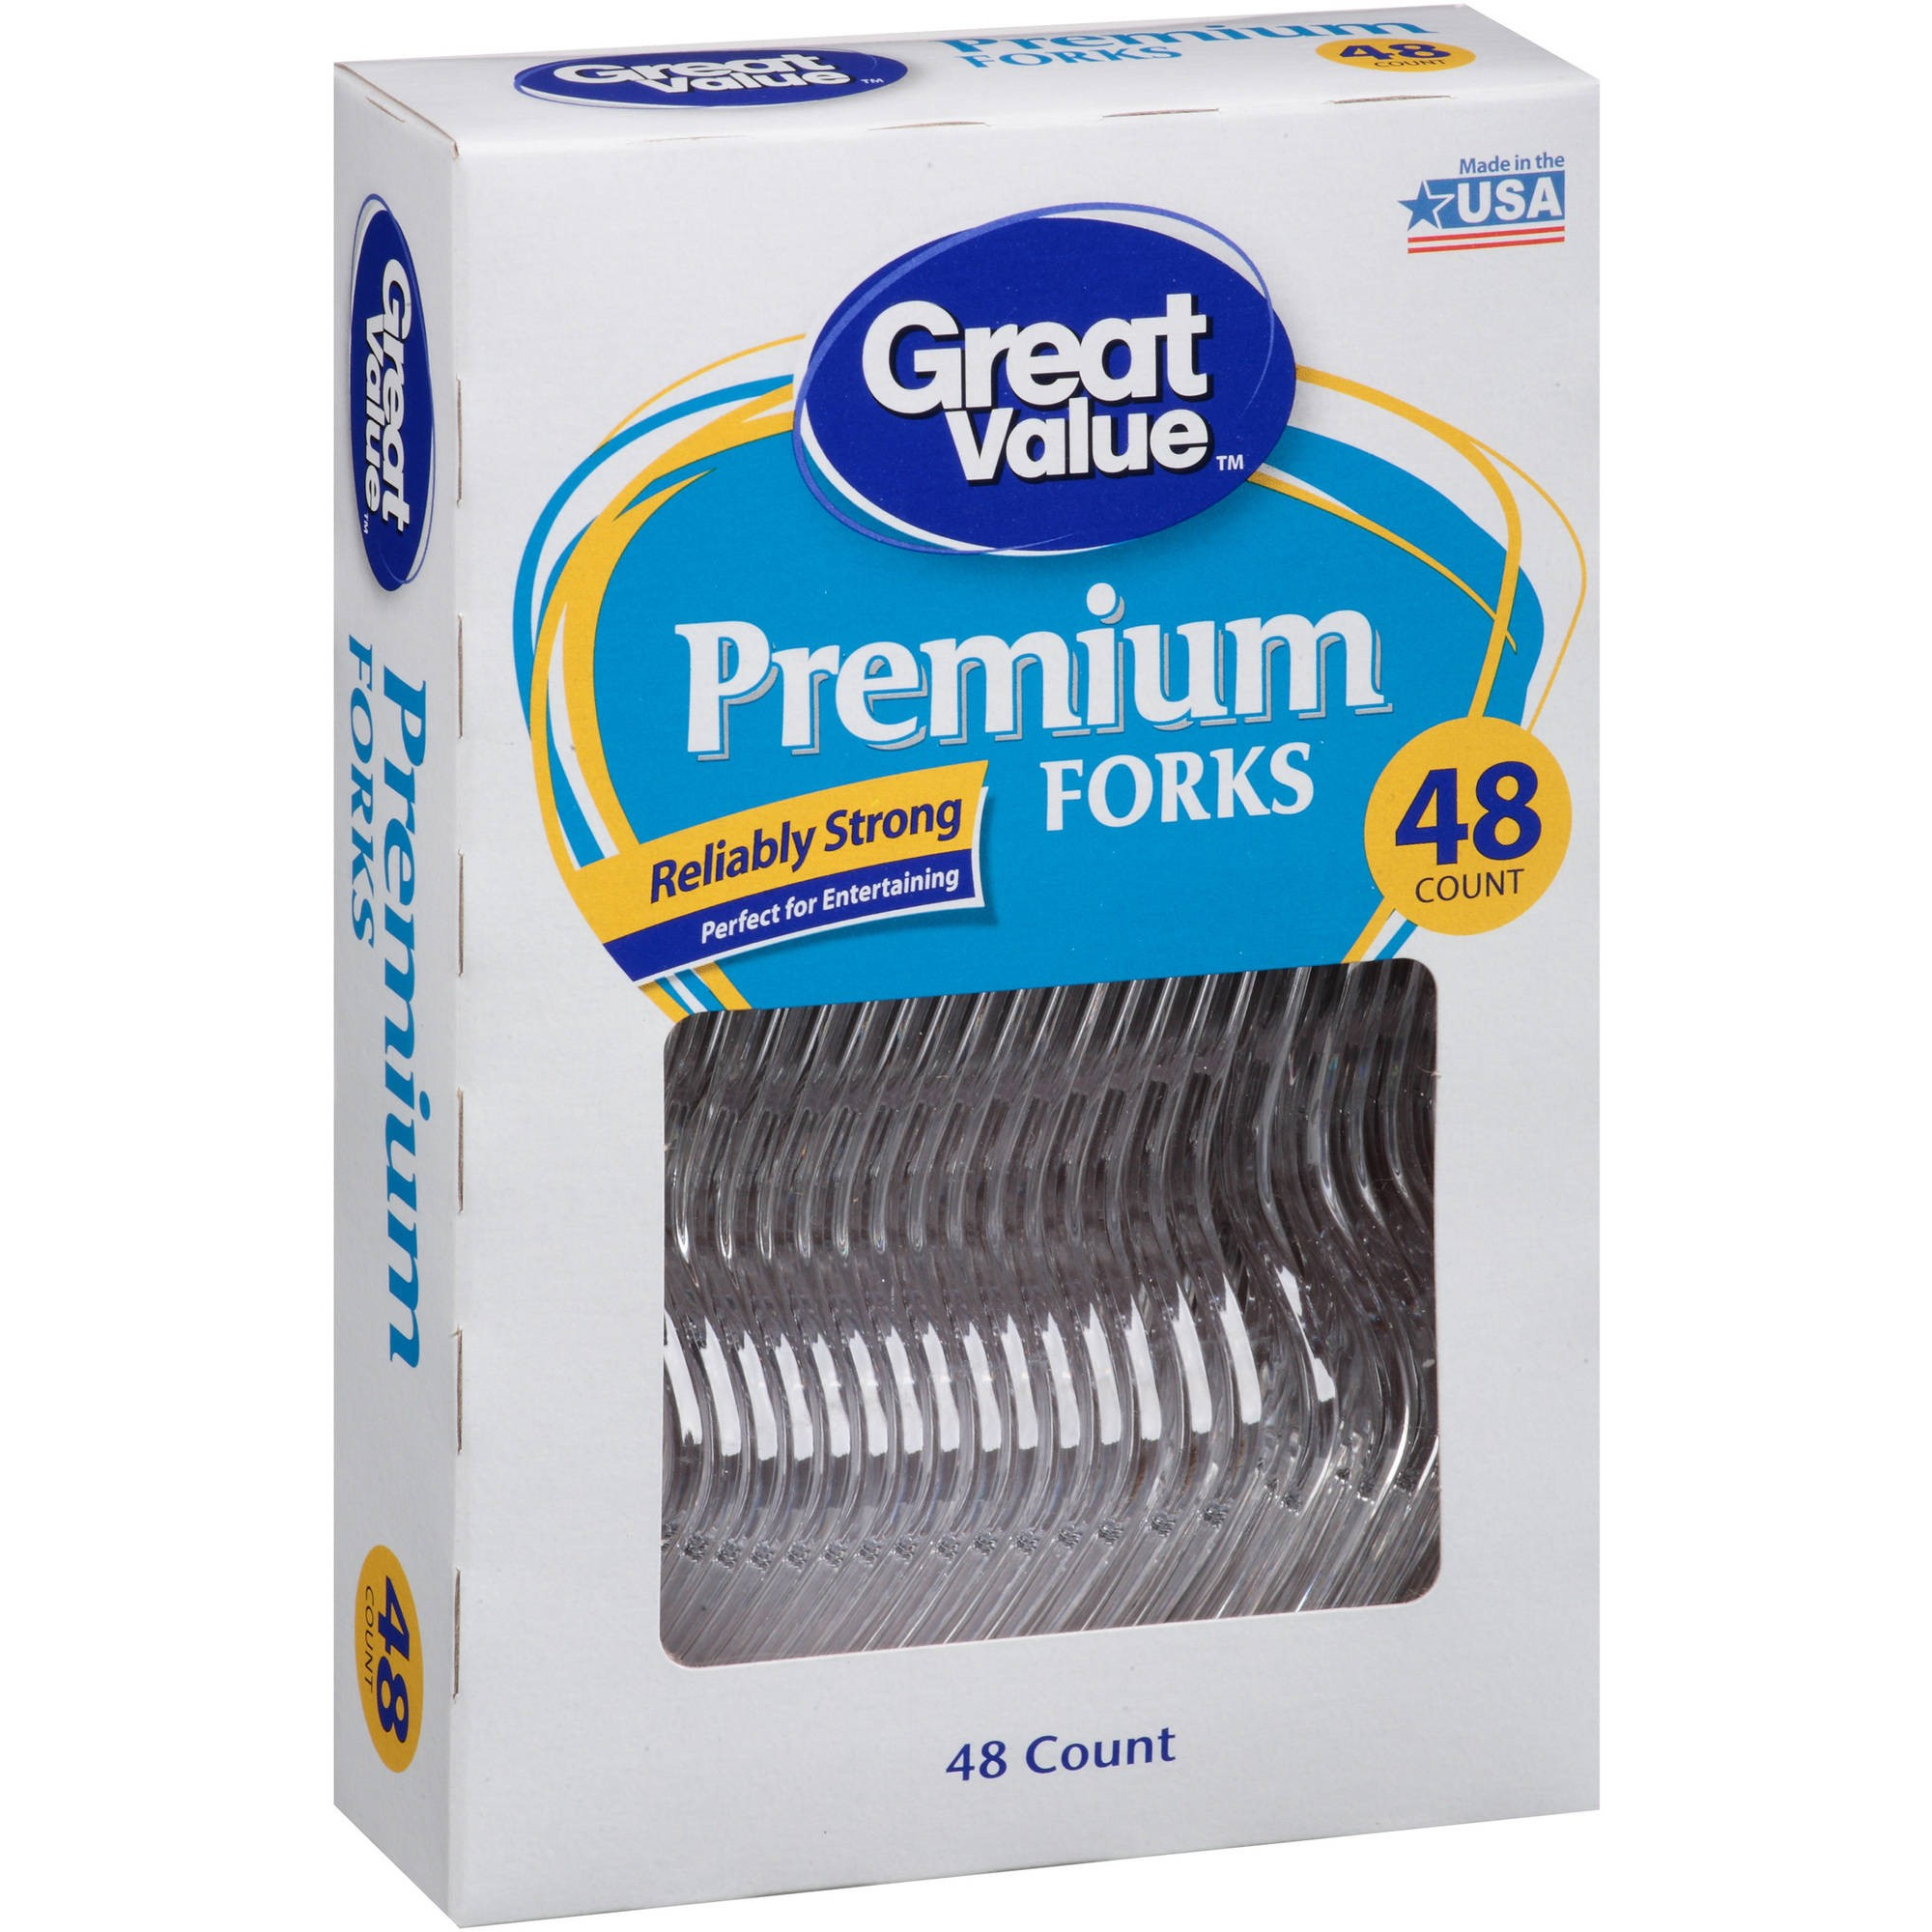 Great Value Premium Clear Forks, 48 Count